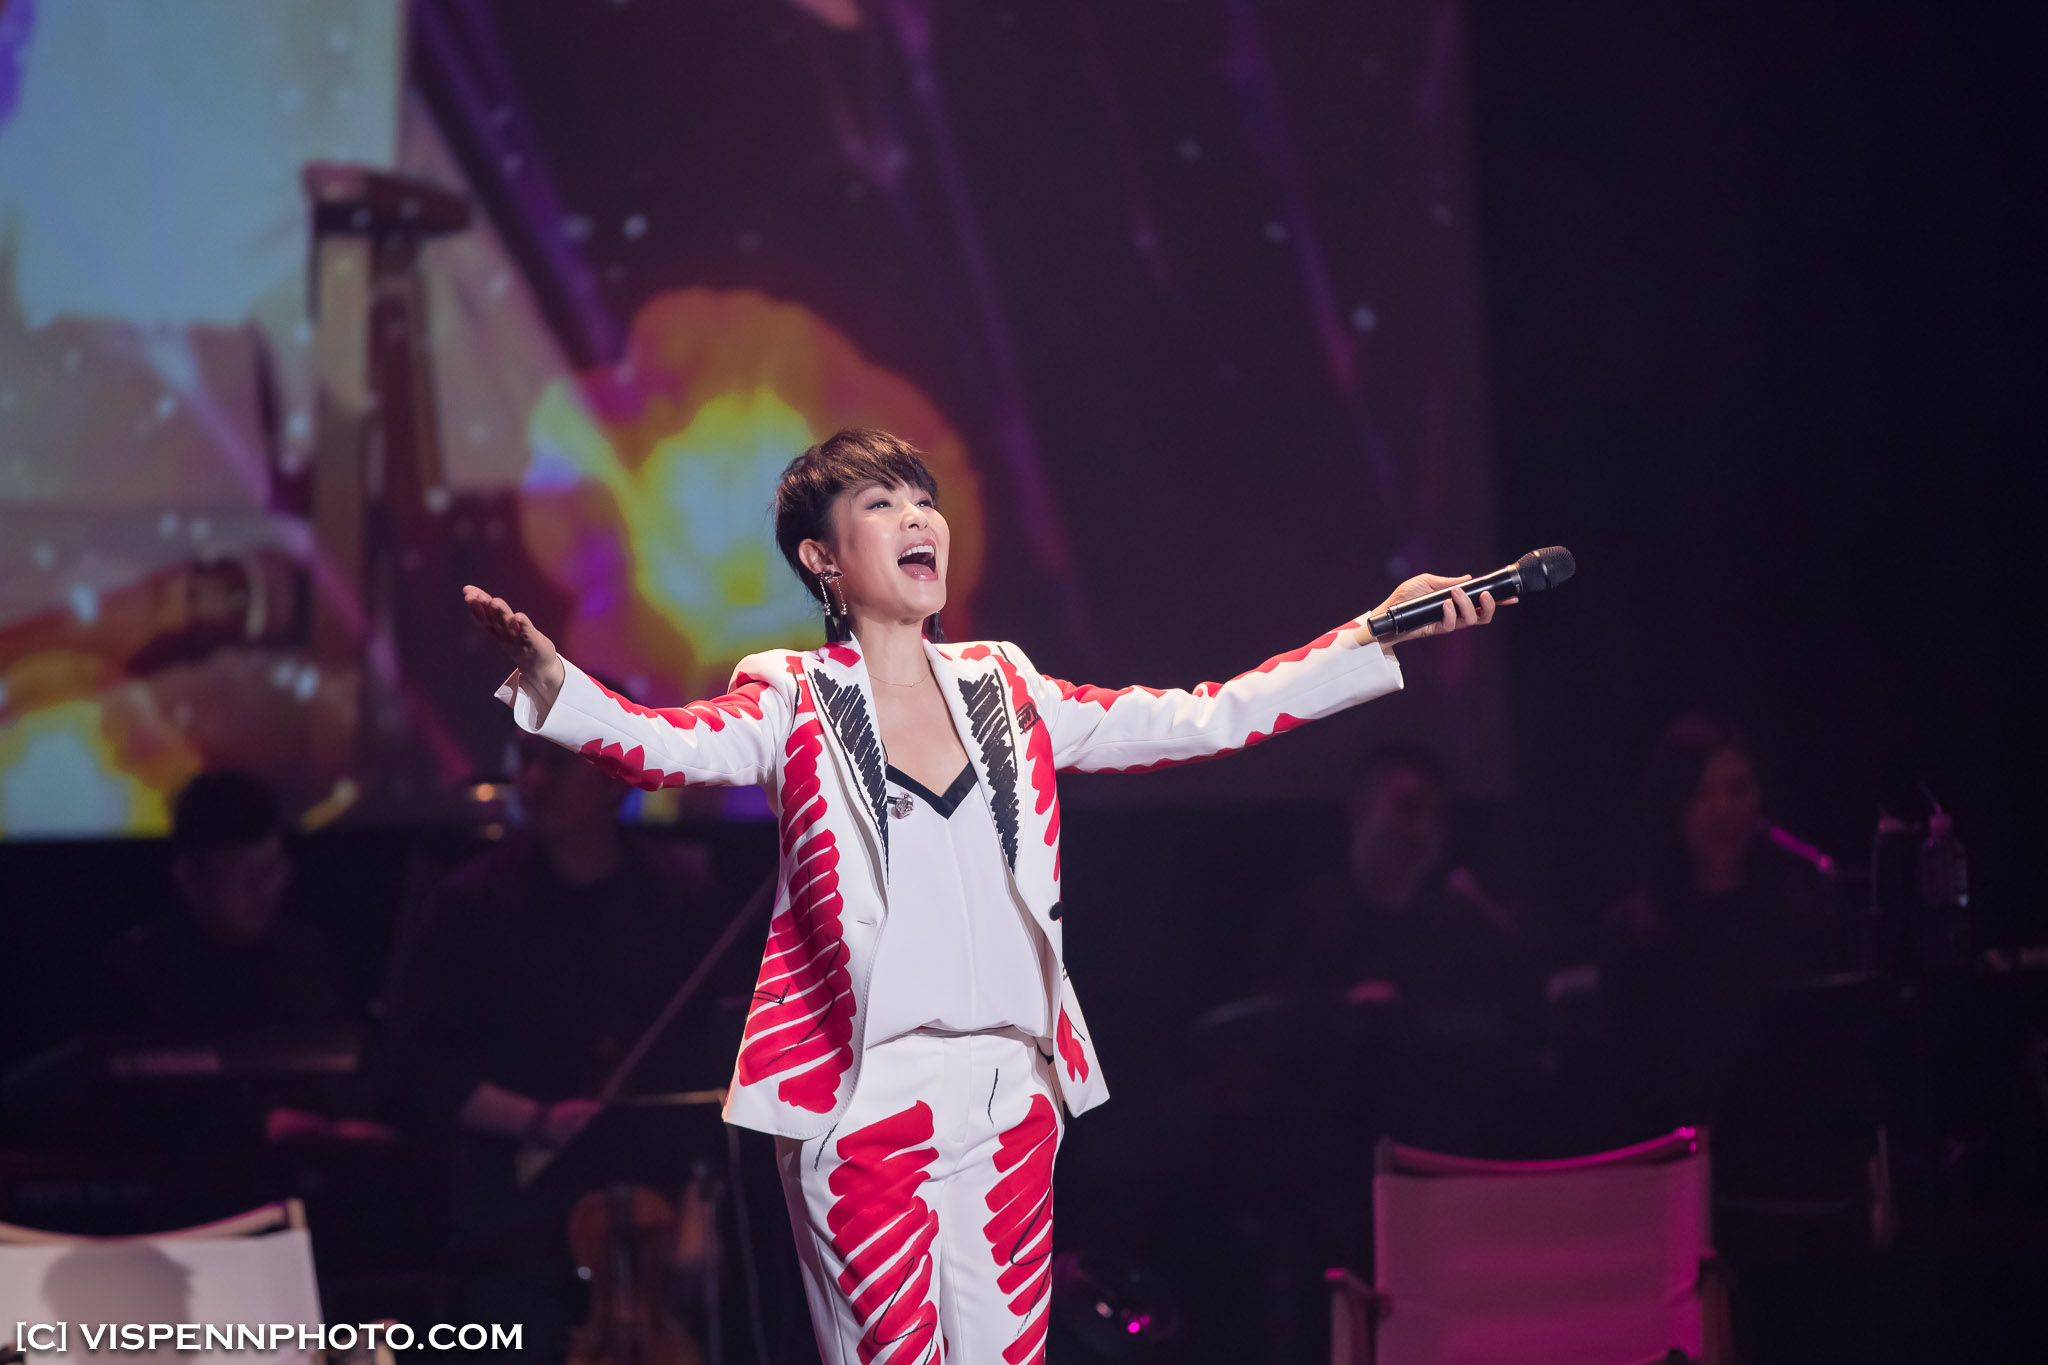 Melbourne CONCERTS Photography 墨尔本 演唱会 照片 摄影师 VISPENN ReneLiu 1P 1355 1DX VISPENN